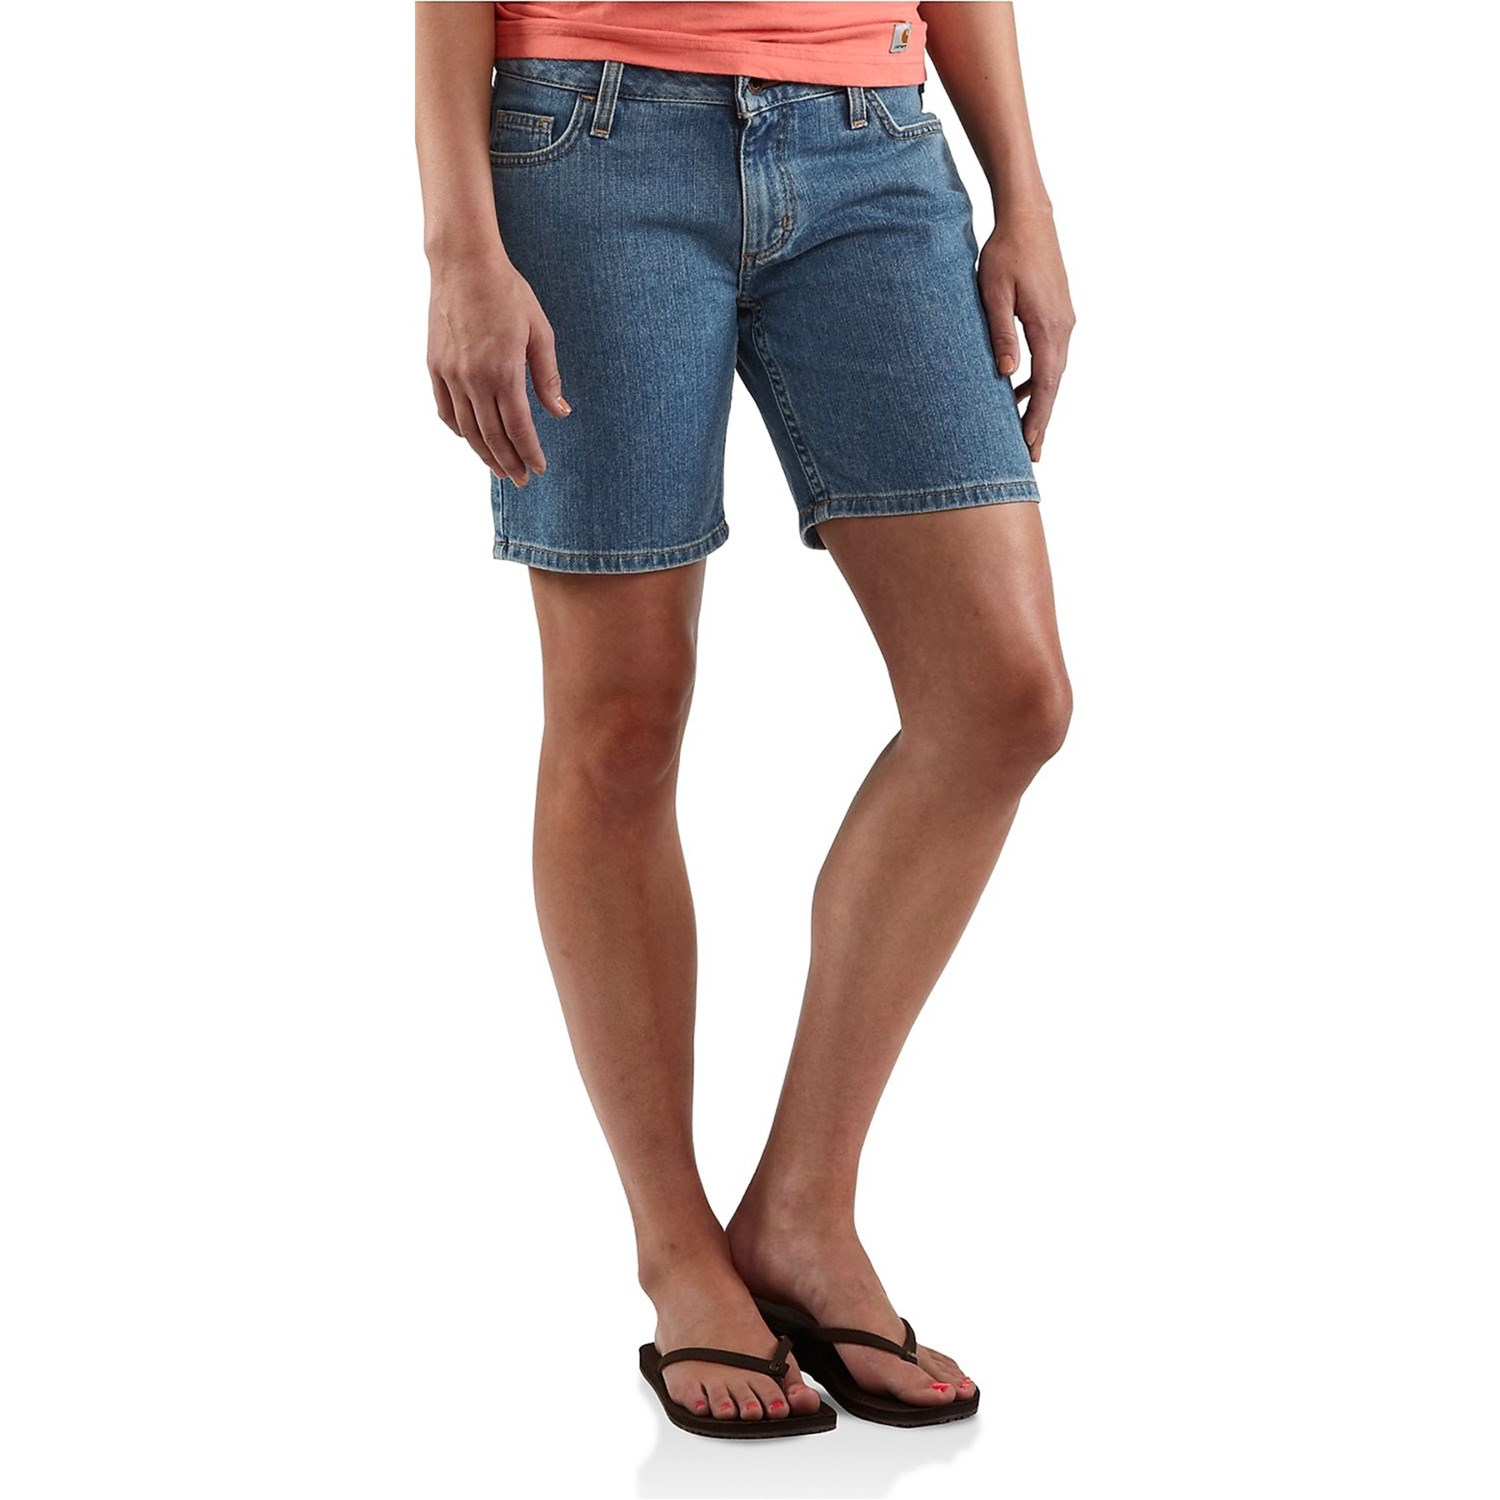 Long Denim Shorts. MiH The Phoebe Shorts ($) in Super Bleach. Wear these with your favorite sneakers for a super casual daytime look.